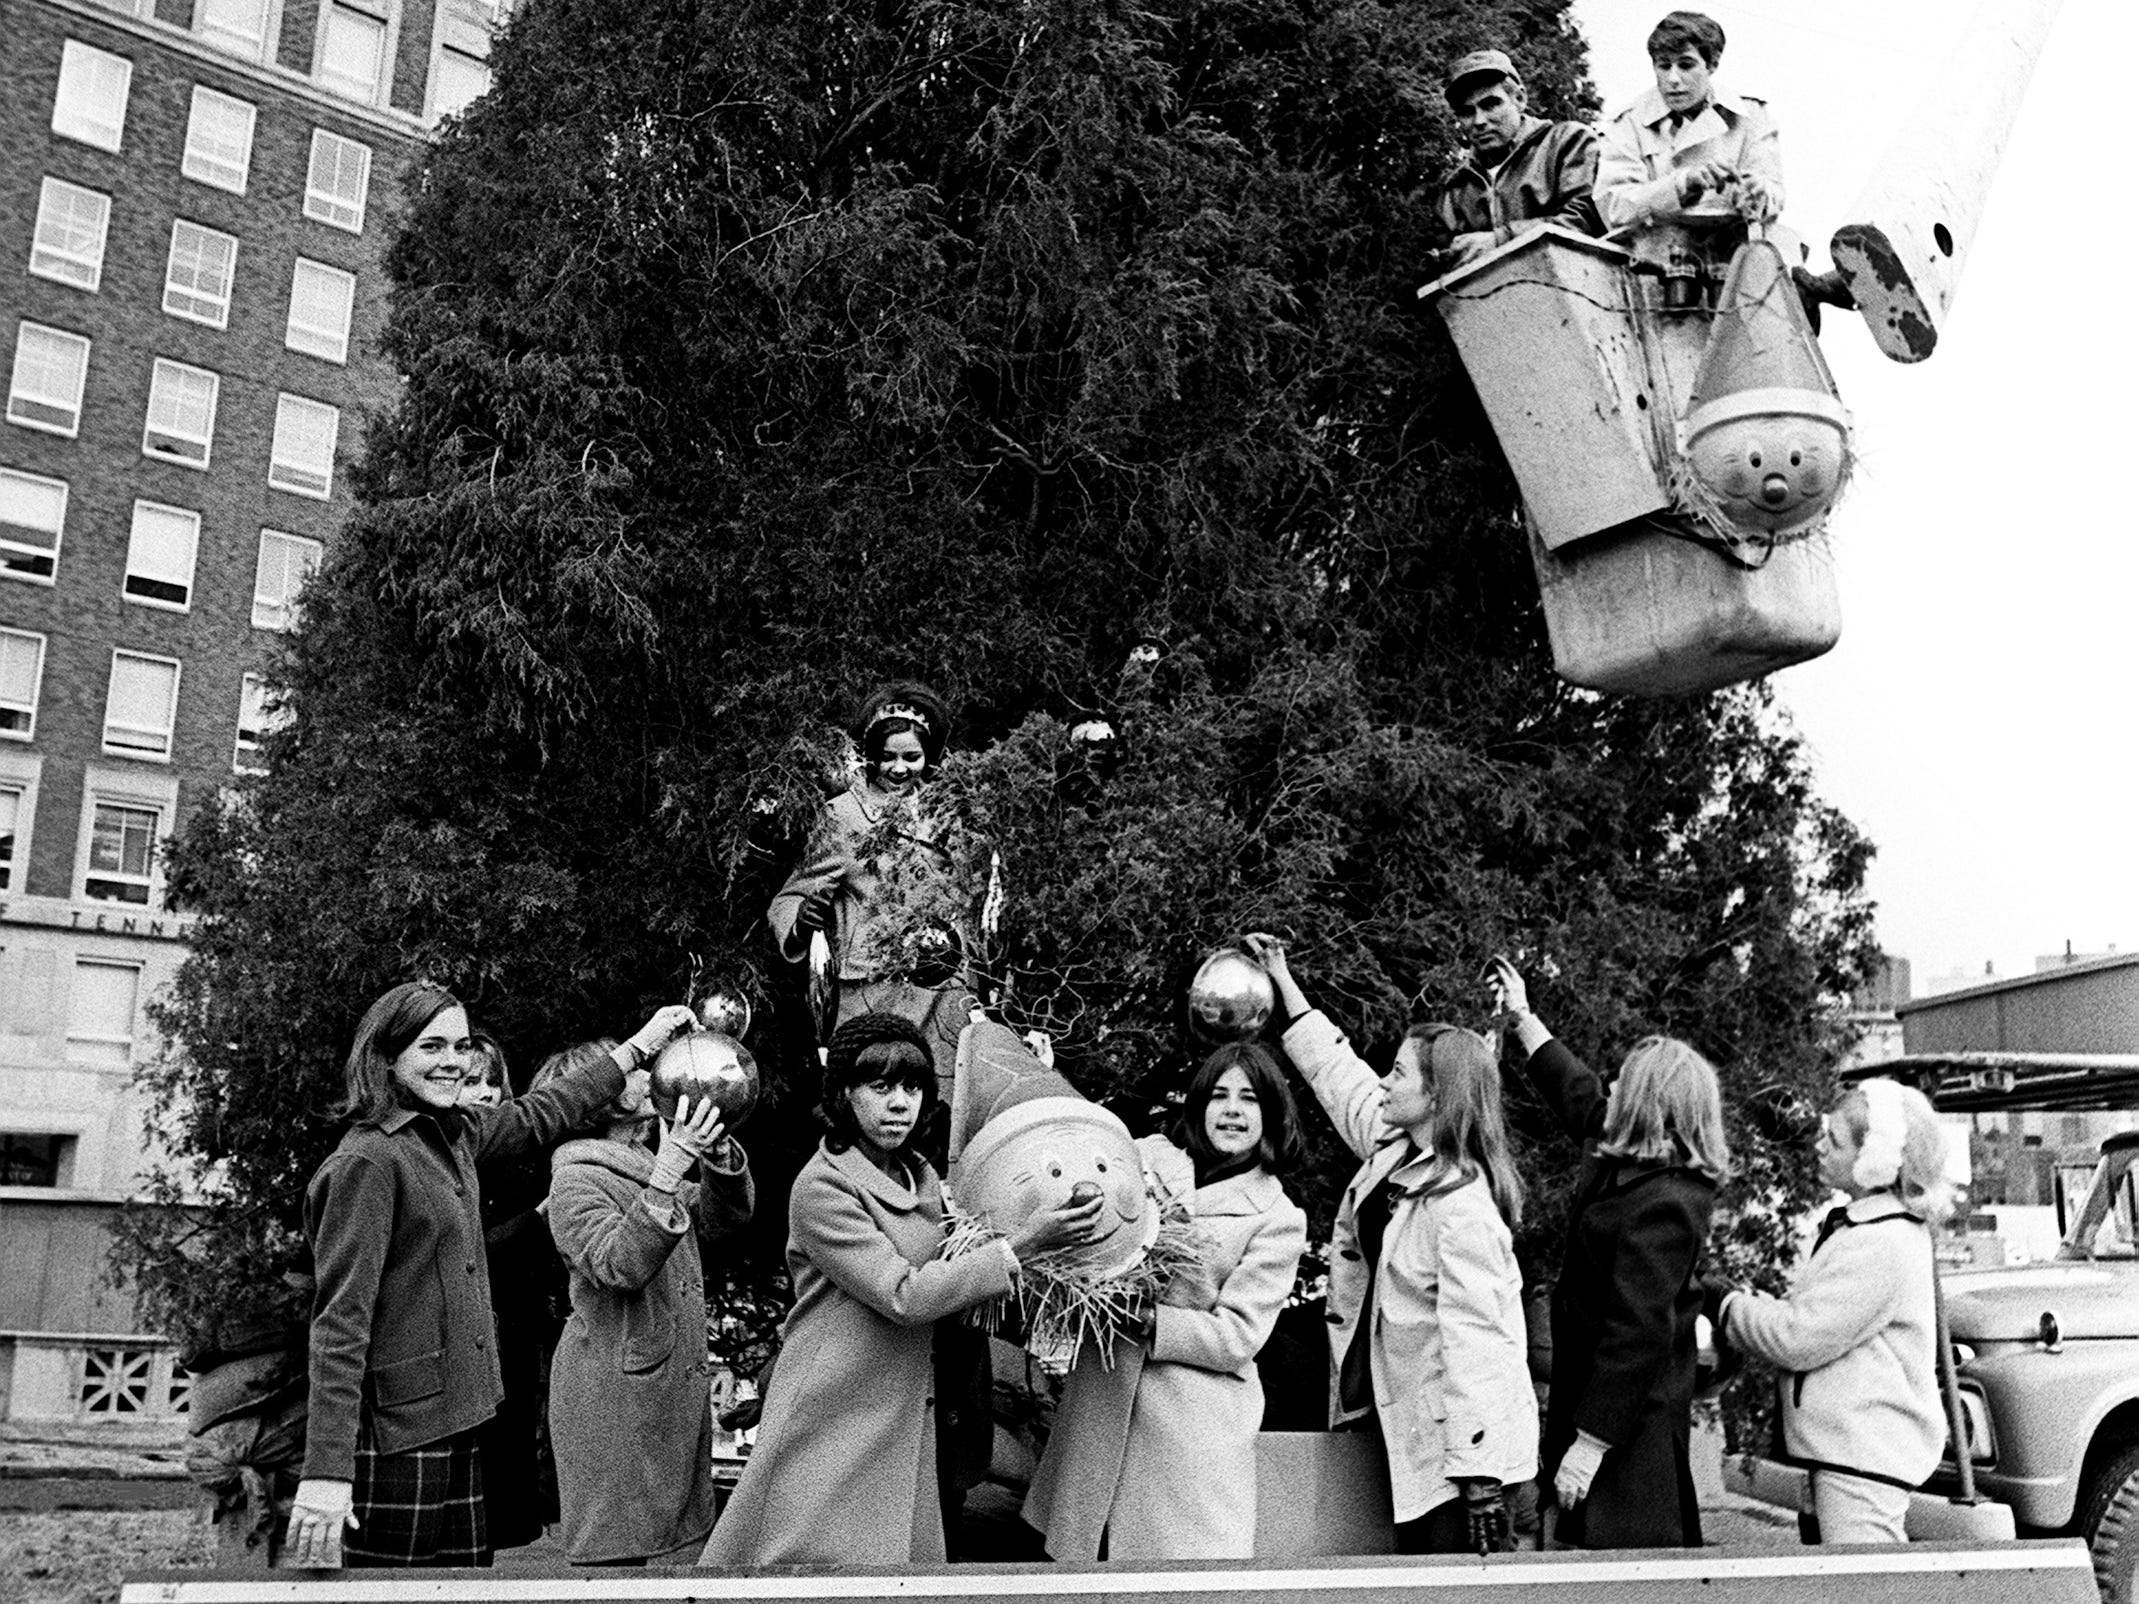 Members of Castner Knott's Teen Board help decorate Nashville's Christmas tree in Memorial Square Nov. 19, 1968 as Don Little, above right, Overton High senior and president of the Teen Board, oversees from a giant hoist. The tree is being prepared for the upcoming lighting ceremony.